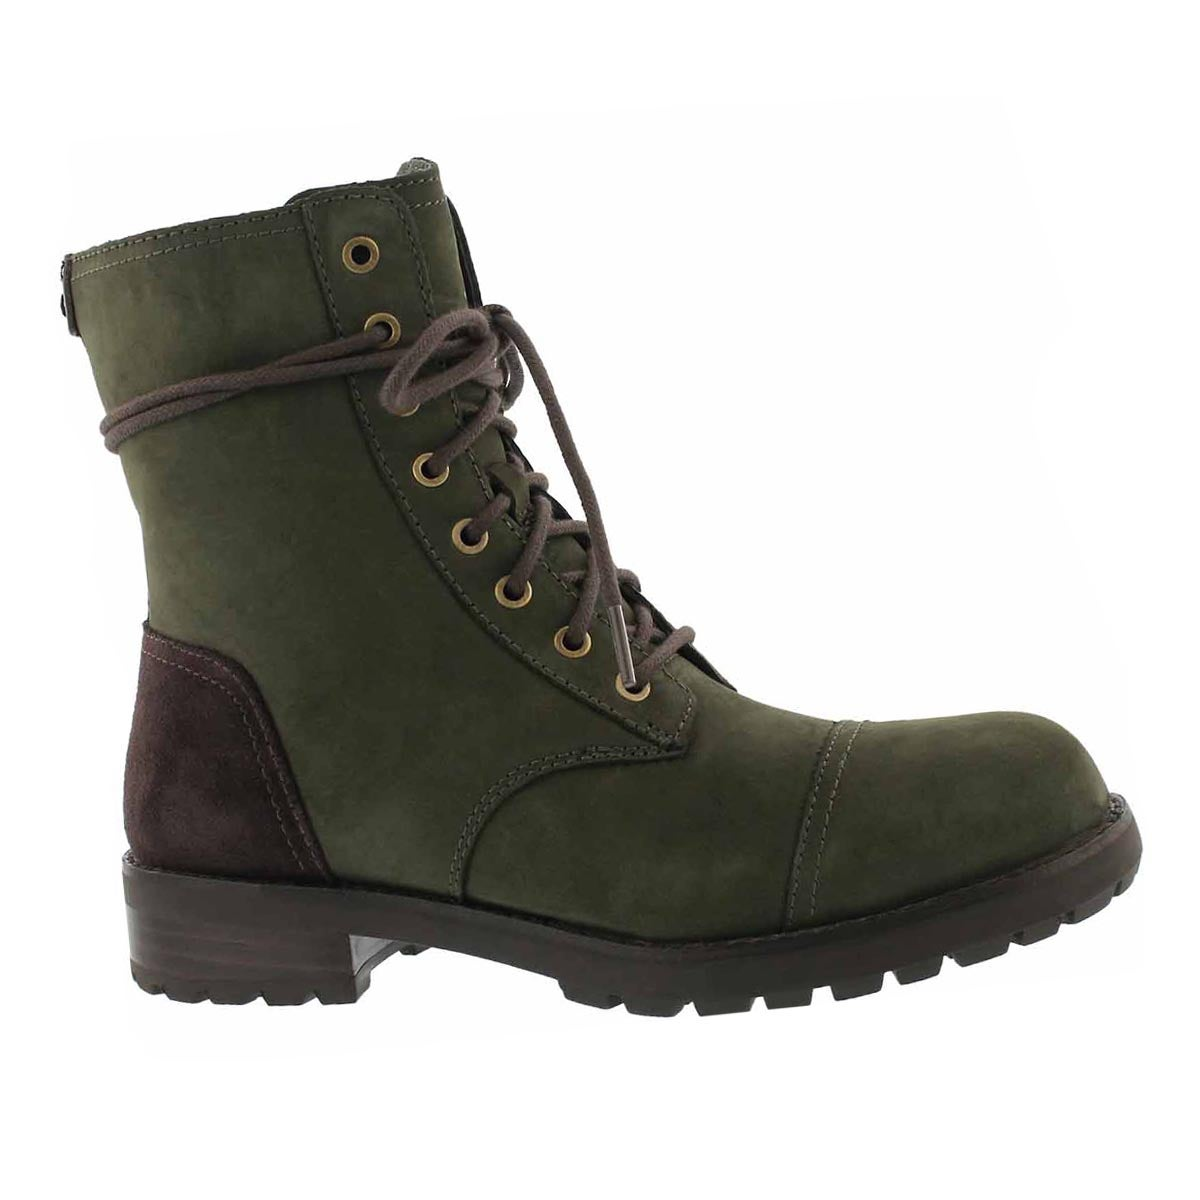 Women's KILMER slate lace up combat boots